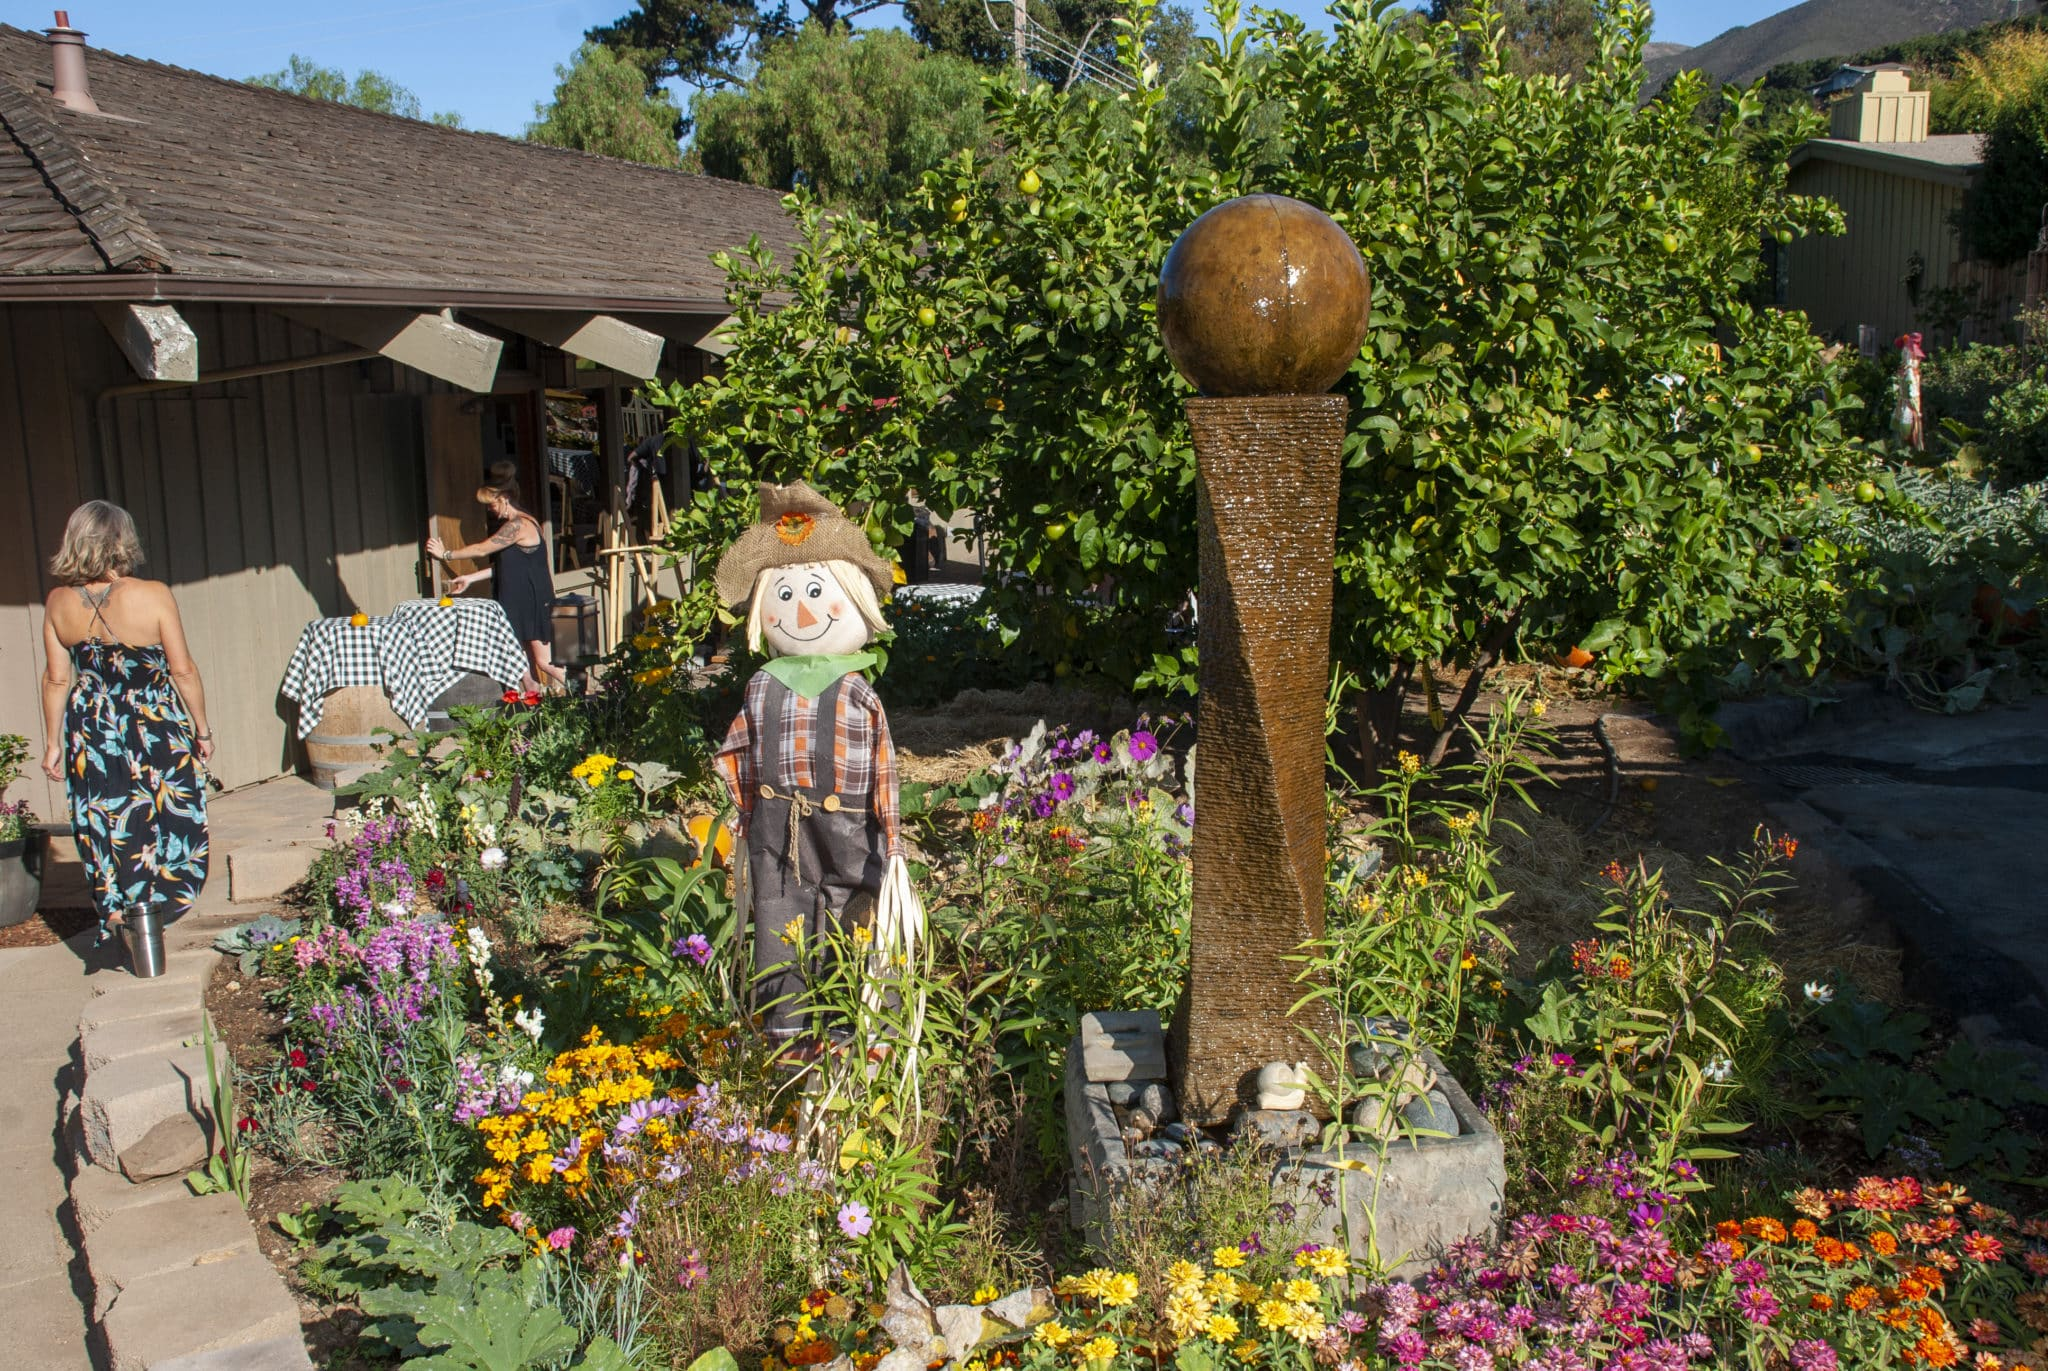 Yellow and orange flower bed with a brown scarecrow to the left and a brown iron sculpture with a ball on top that is a fountain.